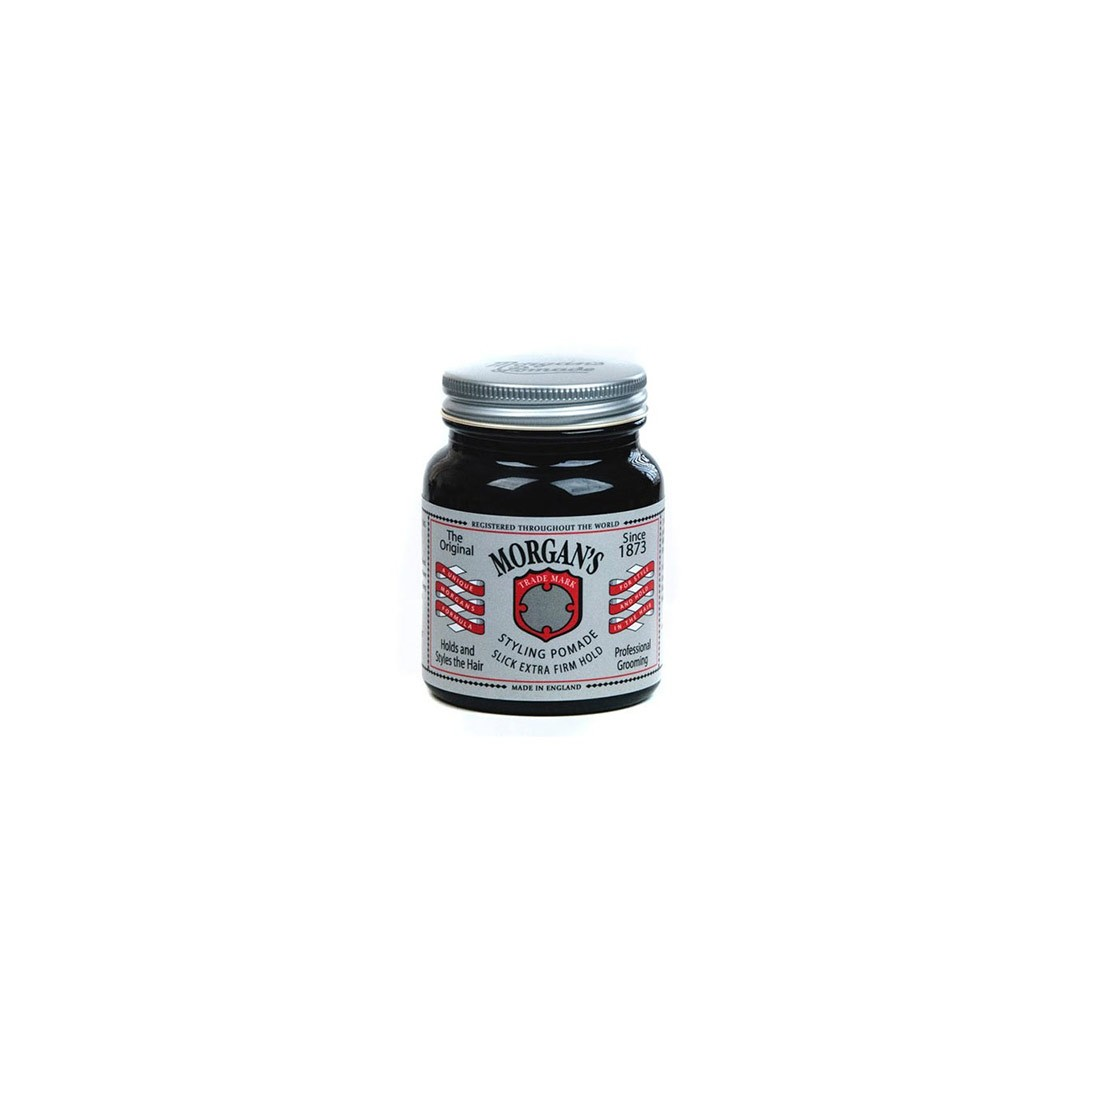 morgan s styling pomade slick firm hold 100gr